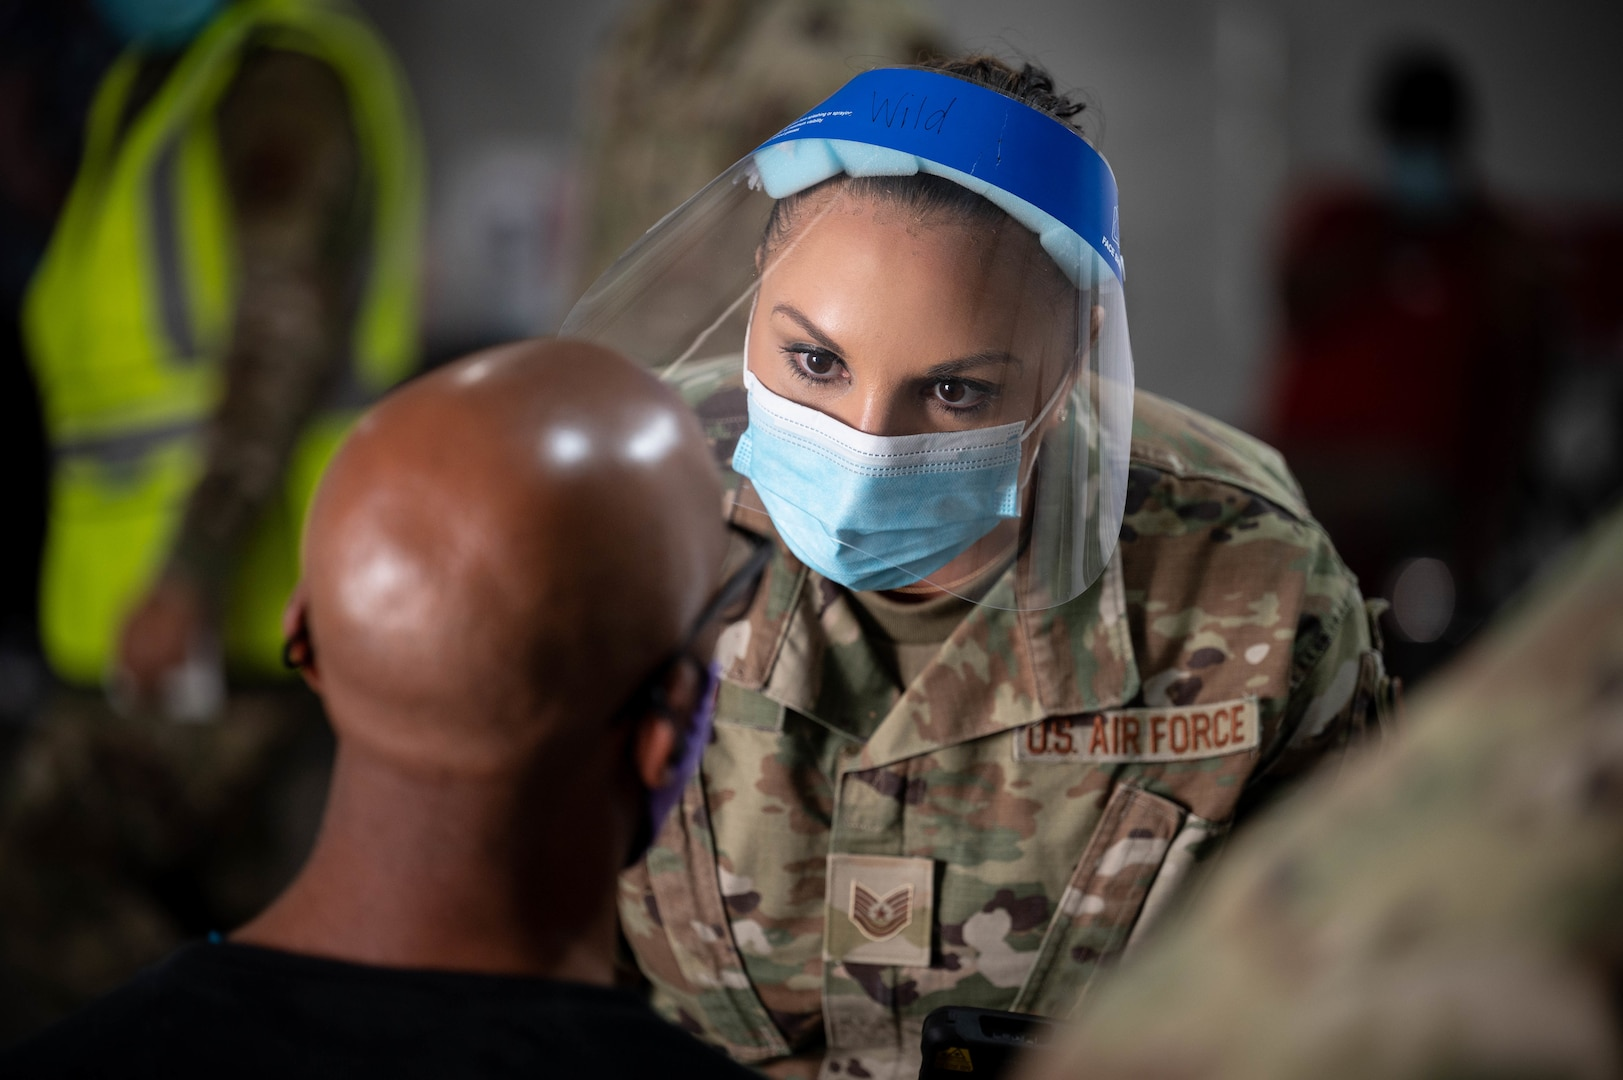 U.S. Air Force Airman 1st. Class Linzie Avalos, deployed from Peterson Air Force Base, Colorado, prepares to vaccinate a Tampa community member at the Tampa Community Vaccination Center March 12, 2021 in Tampa, Florida. Avalos is one of nearly 140 Airmen on site at the state-led, federally-supported operation. U.S. Northern Command, through U.S. Army North, remains committed to providing continued, flexible Department of Defense support to the Federal Emergency Management Agency as part of the whole-of-government response to COVID-19. (U.S. Air Force photo by Master Sgt. Holly Roberts-Davis/Luke AFB Public Affairs)